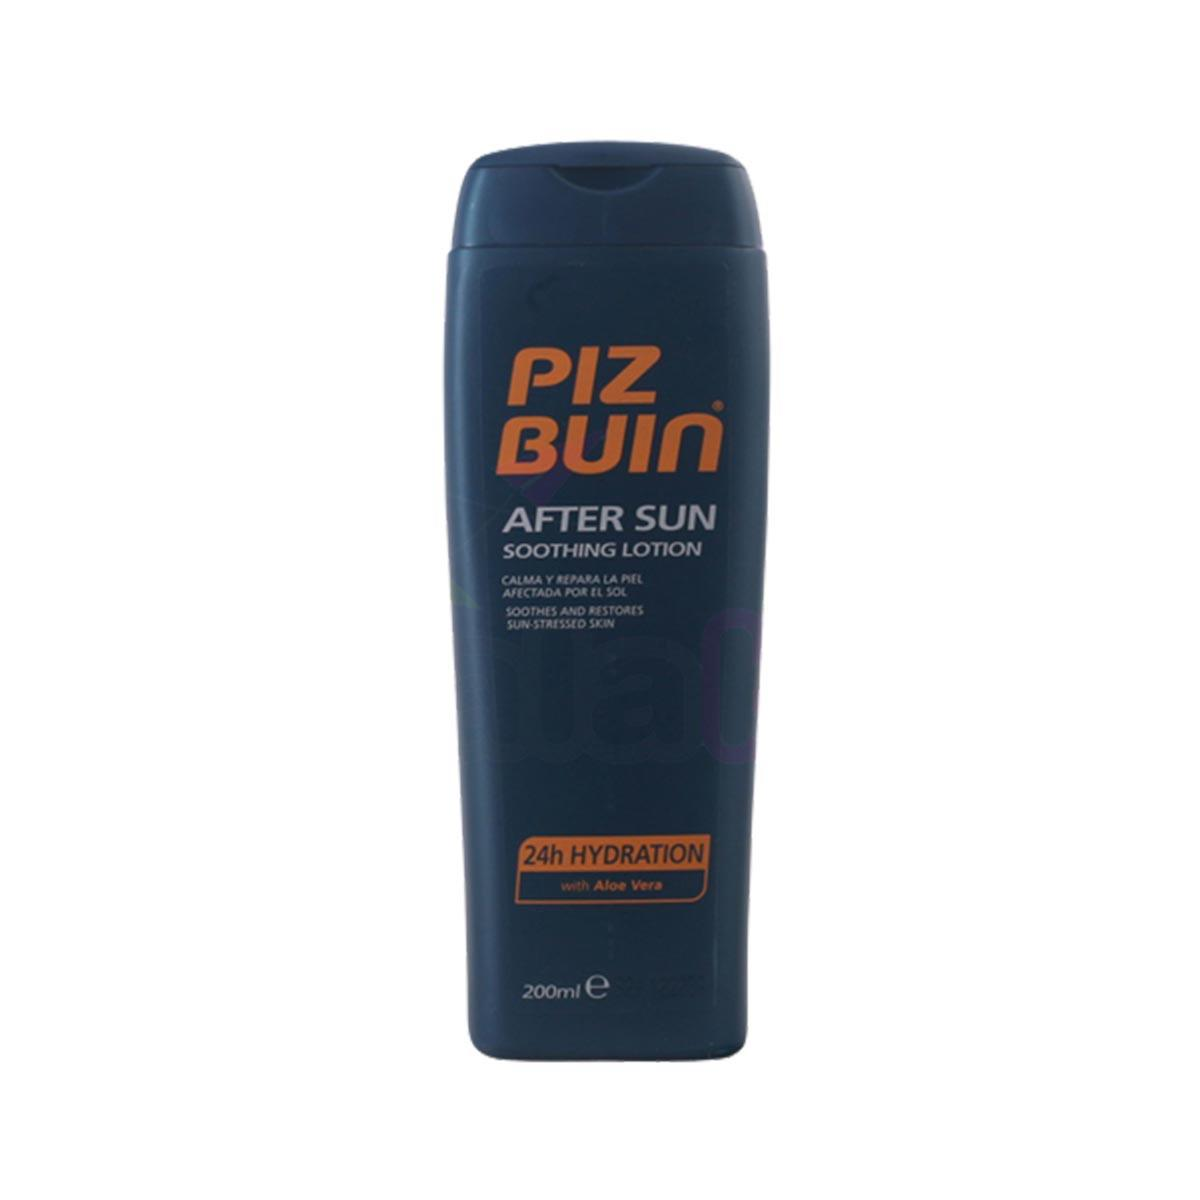 Piz buin fragrances After Sun Soothing Lotion 24 Hydration With Aloe Vera 200ml